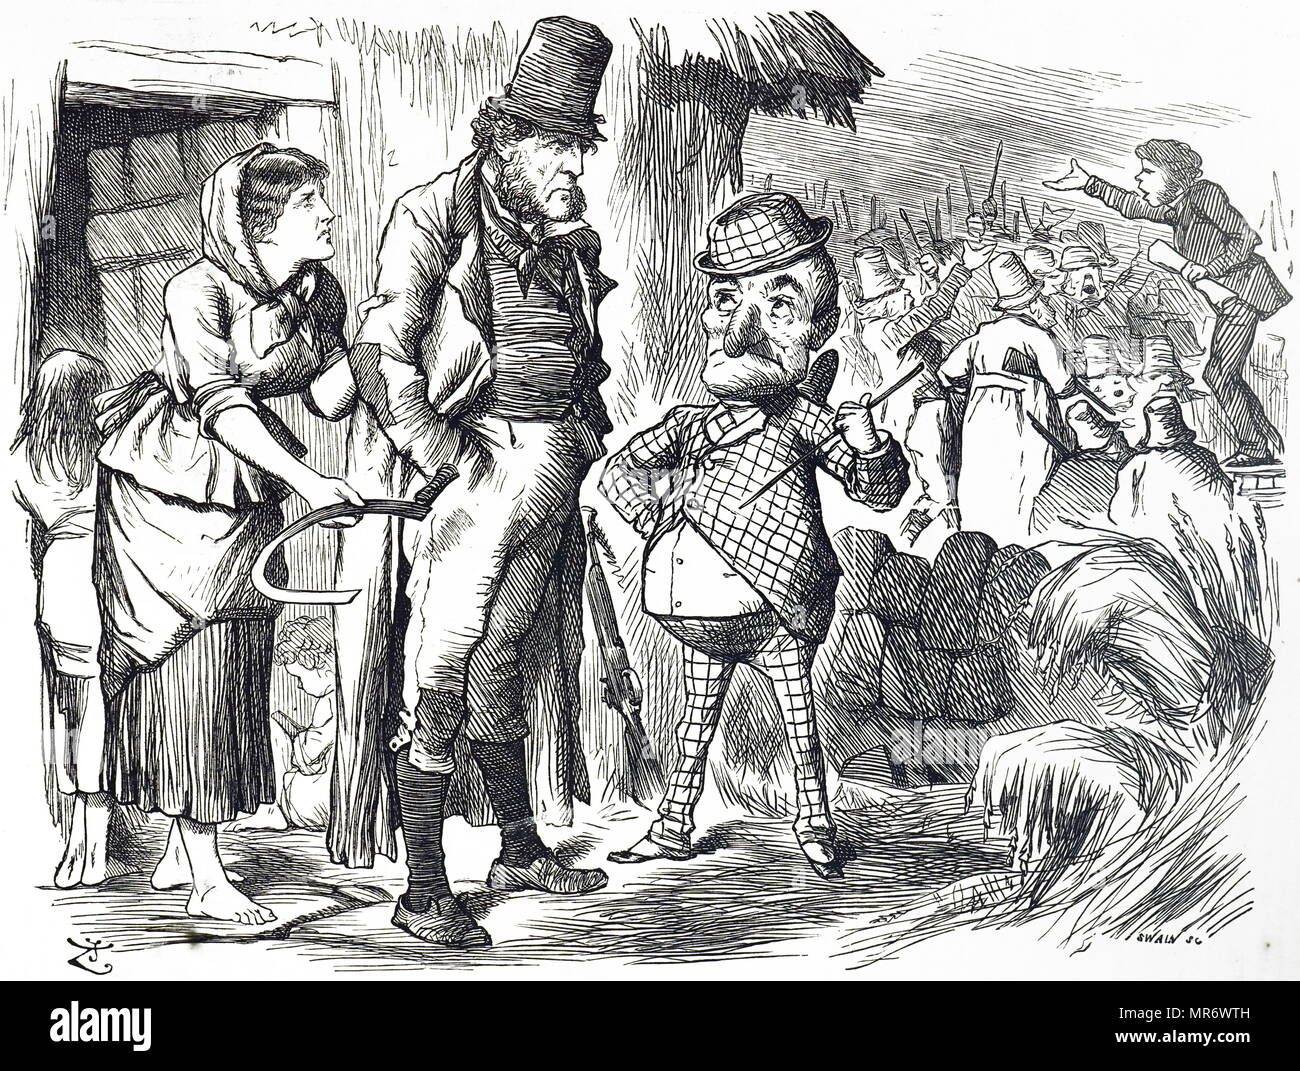 Cartoon commenting on the unrest in Ireland. Illustrated by John Tenniel (1820-1914) an English illustrator, graphic humourist, and political cartoonist. Dated 19th century - Stock Image